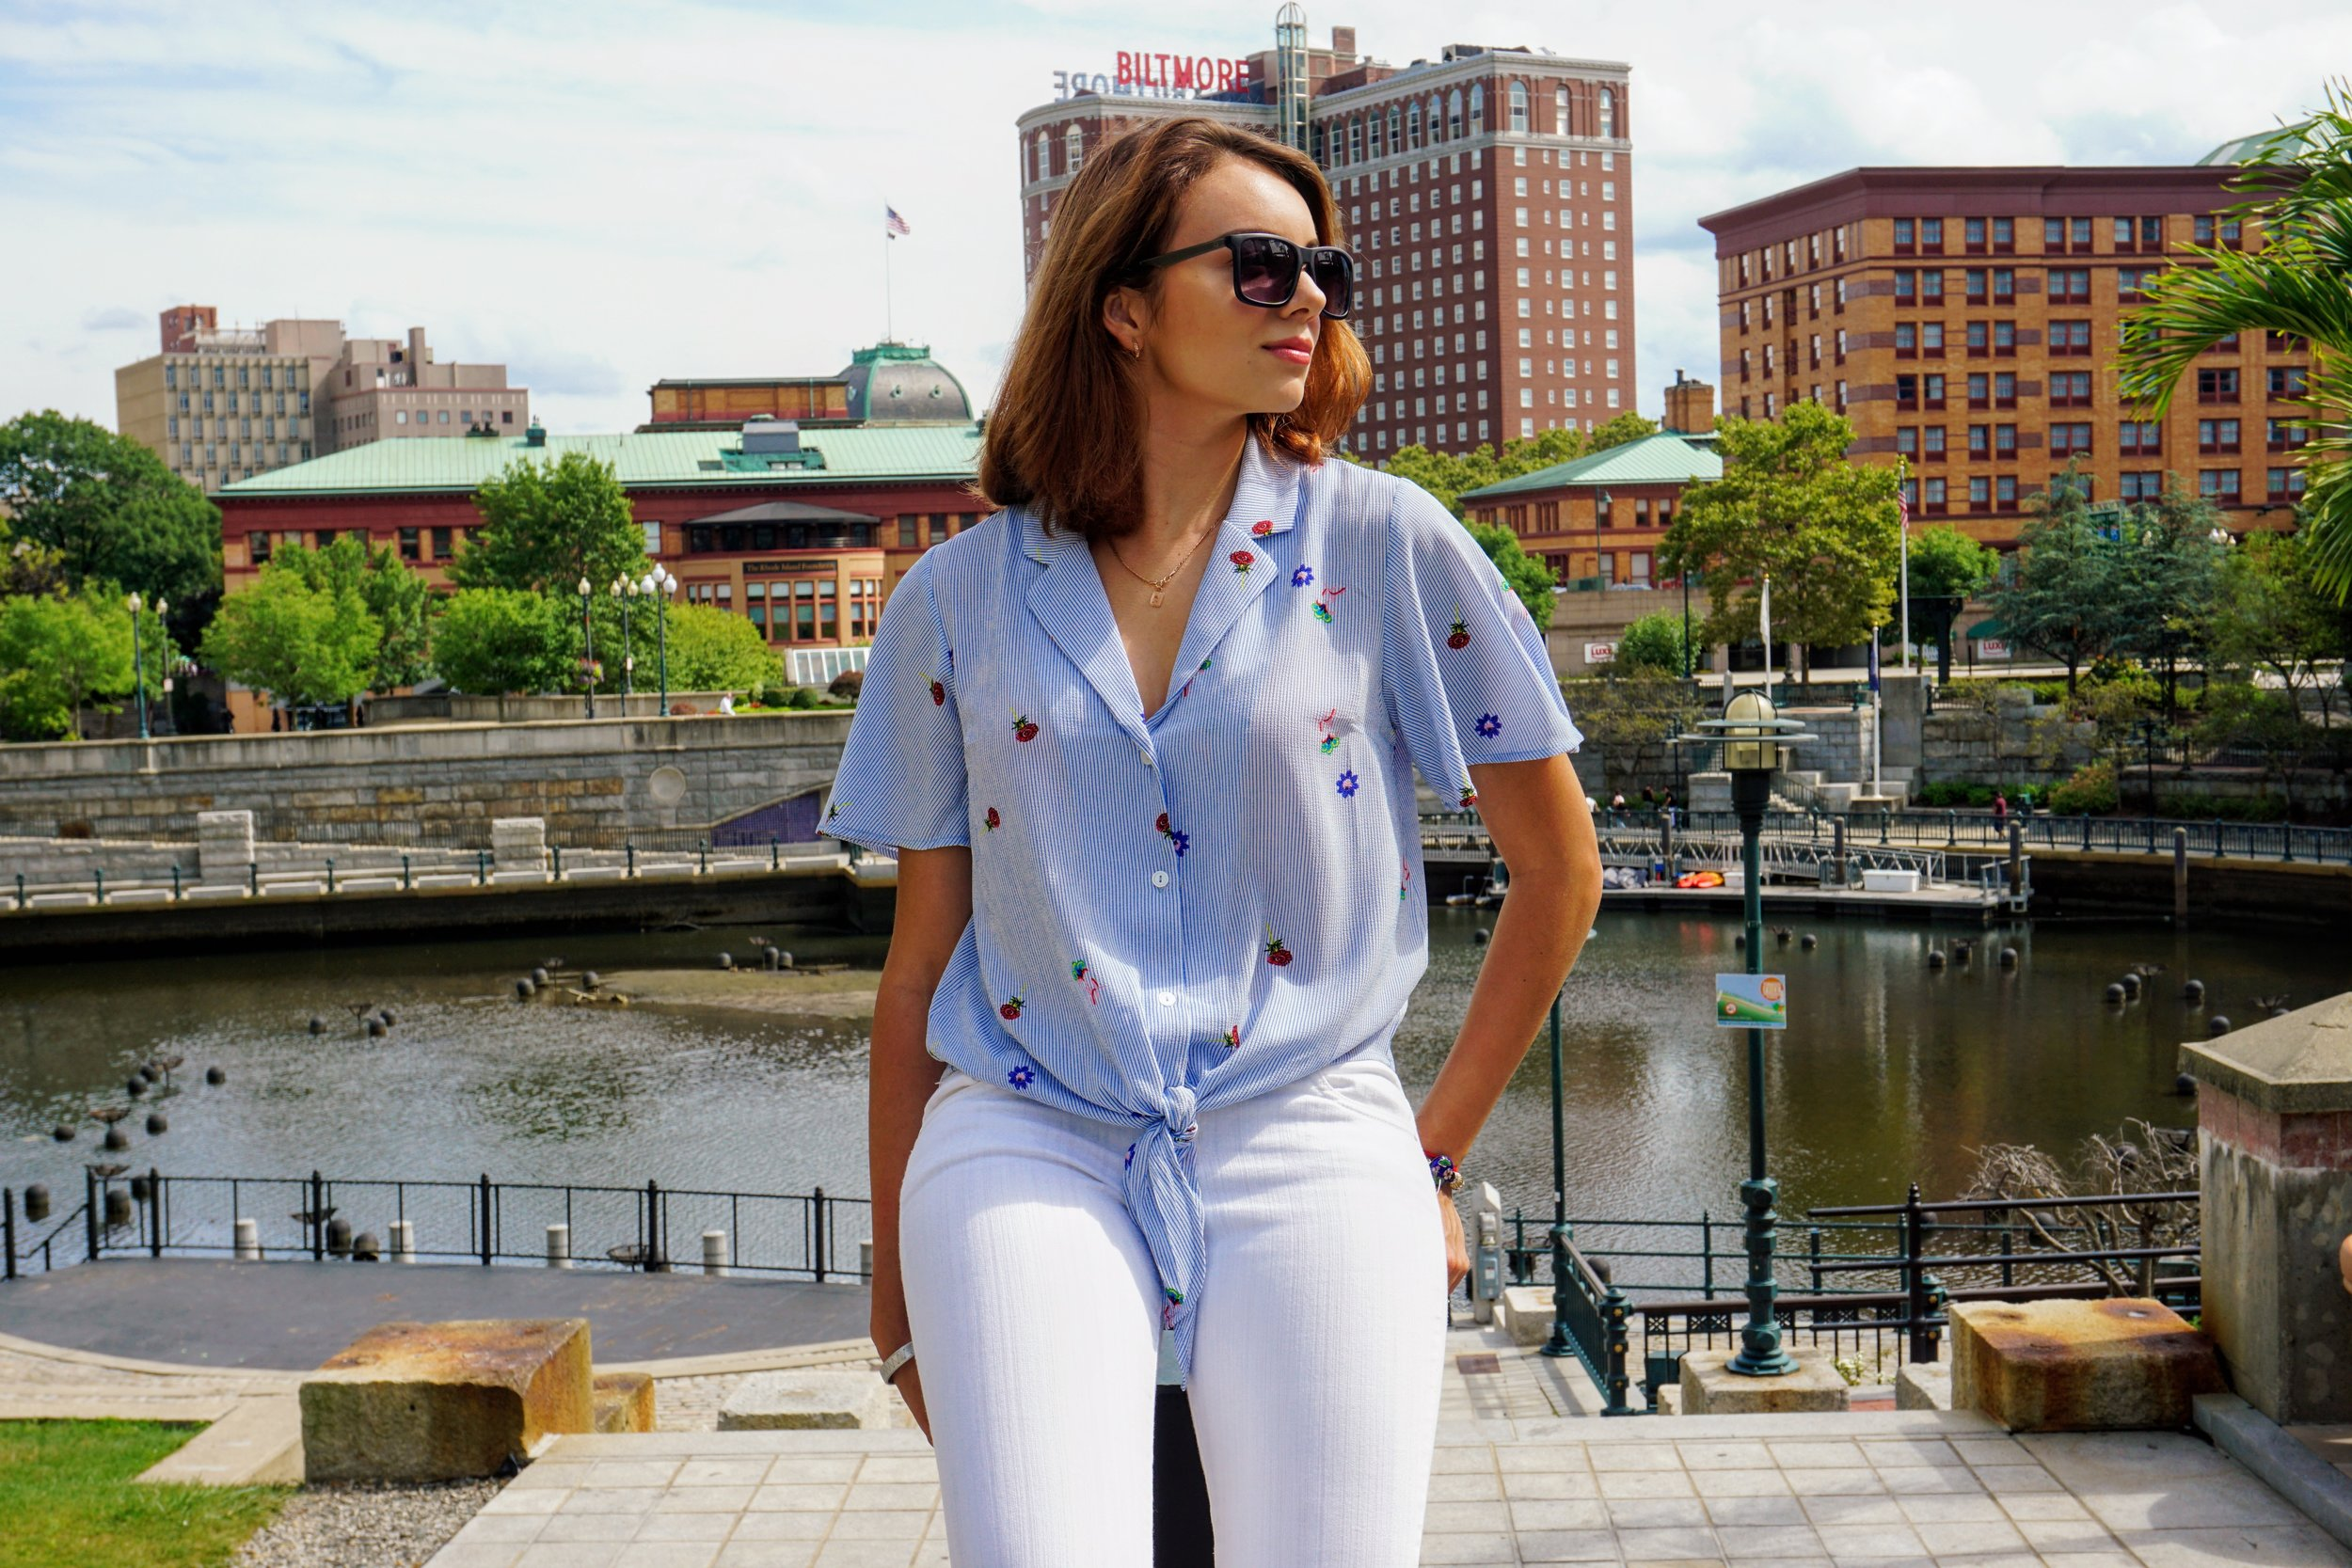 A blogger wearing a blue blouse, white jeans, and posing in Providence, Ma.